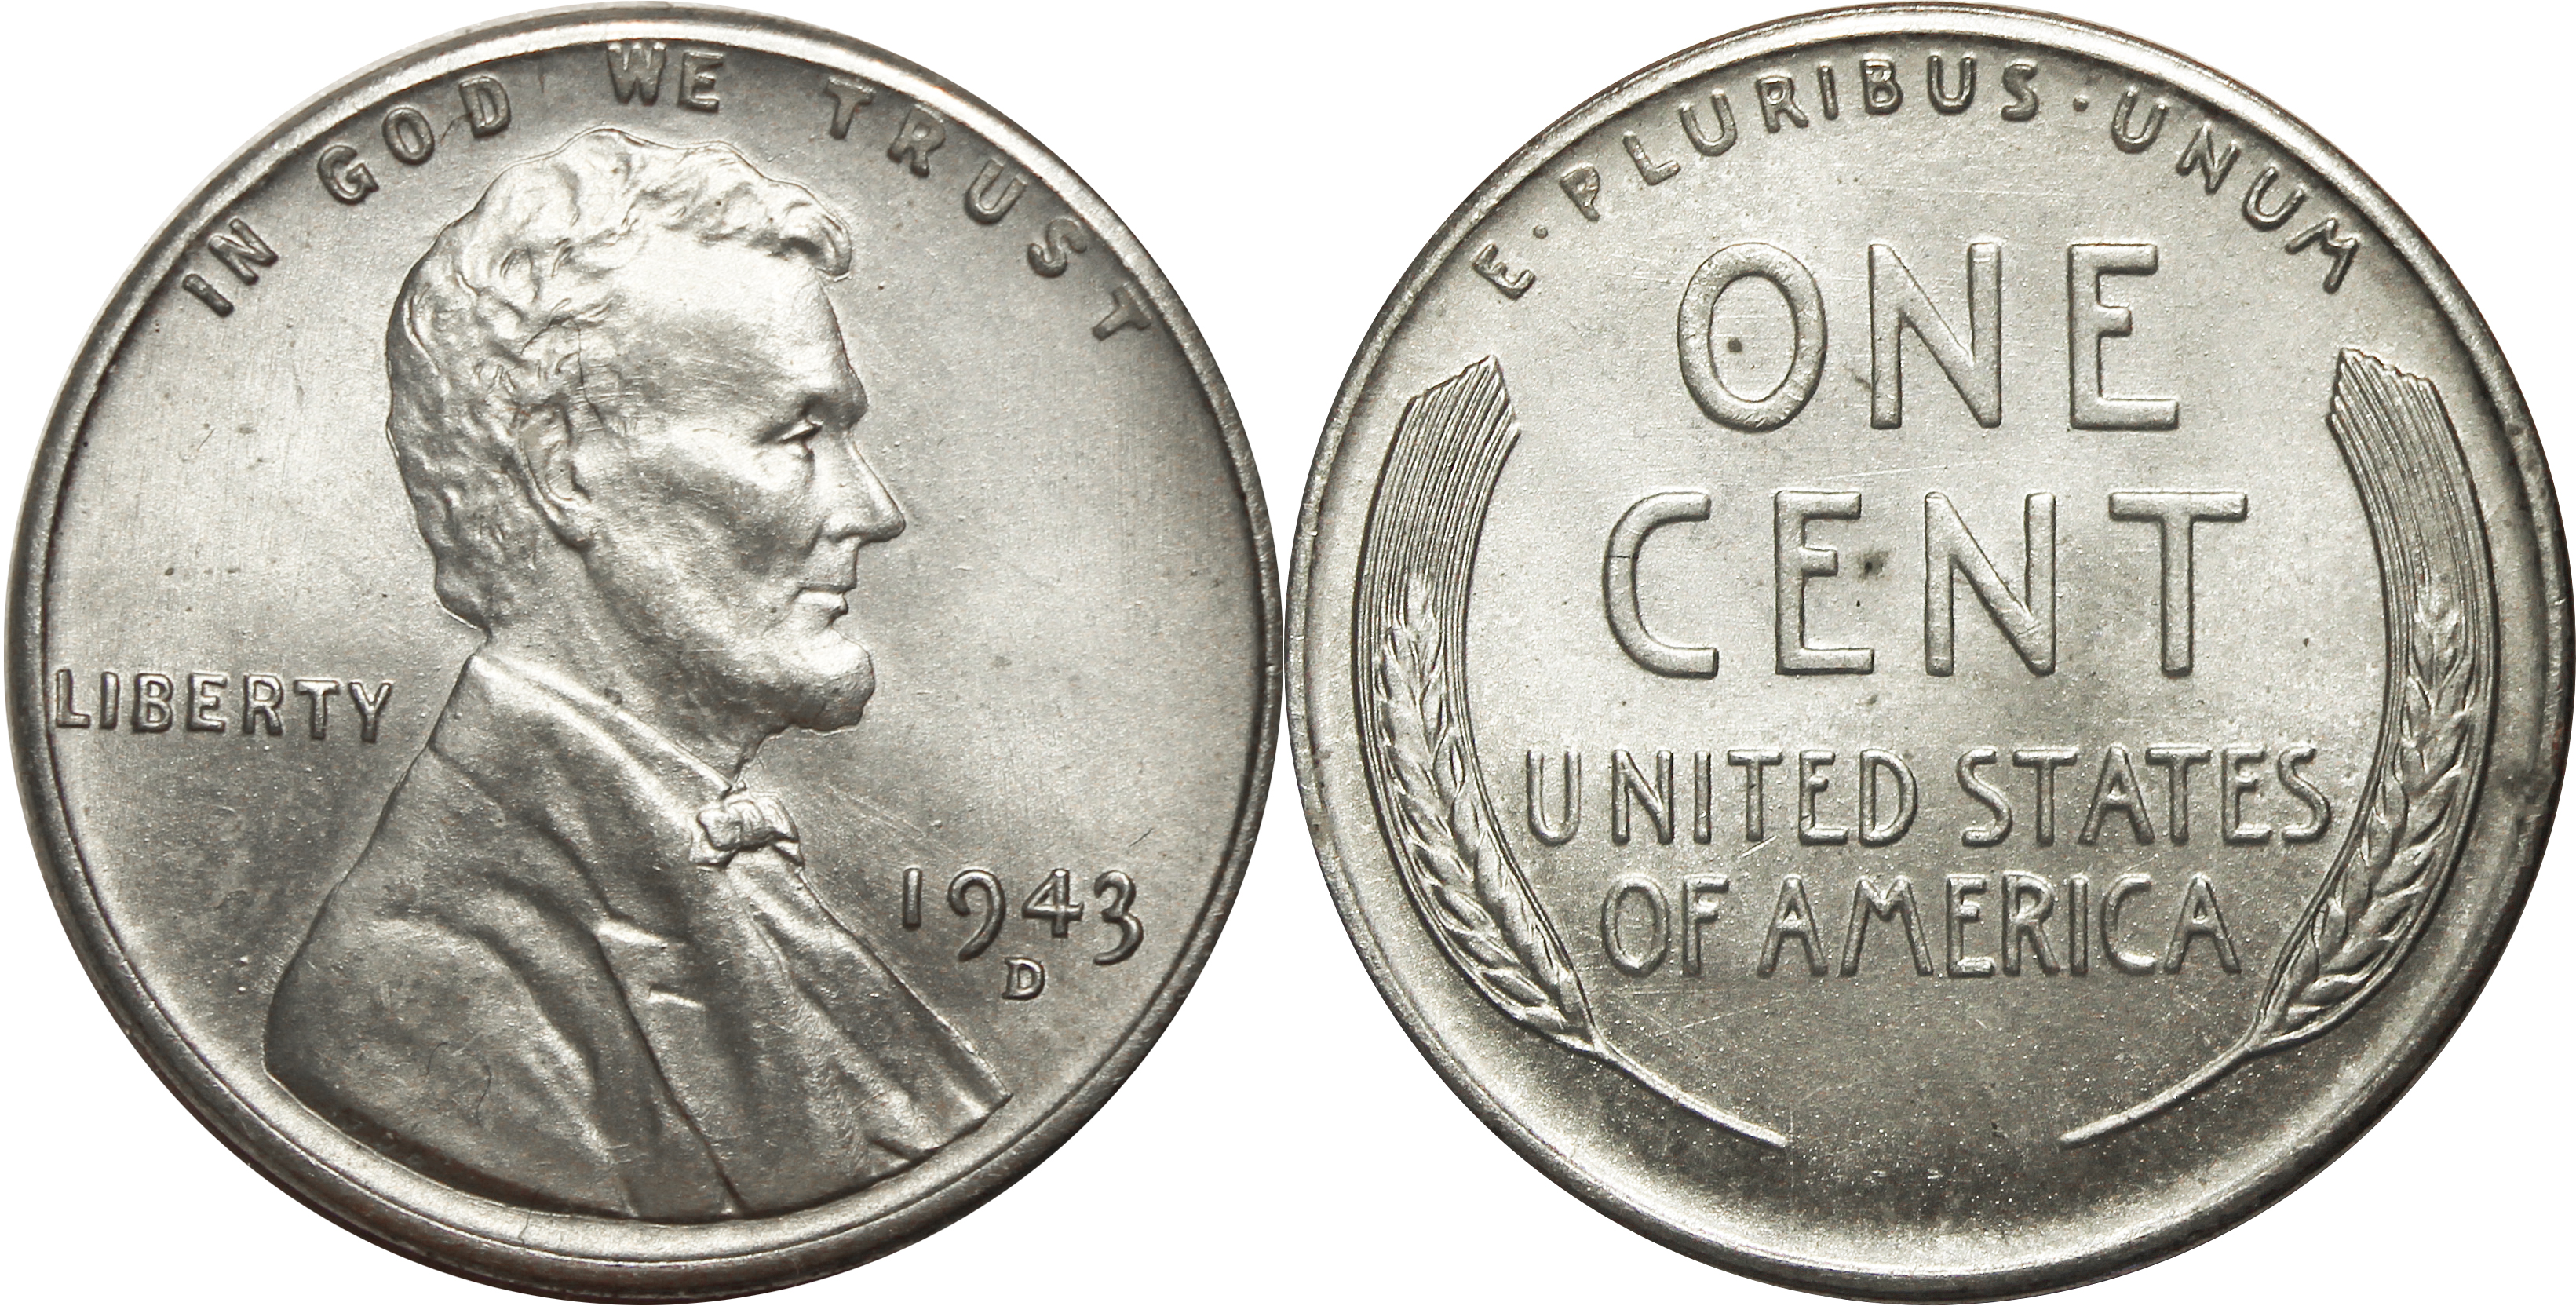 Lincoln Cent Value Wheat Coinhelp